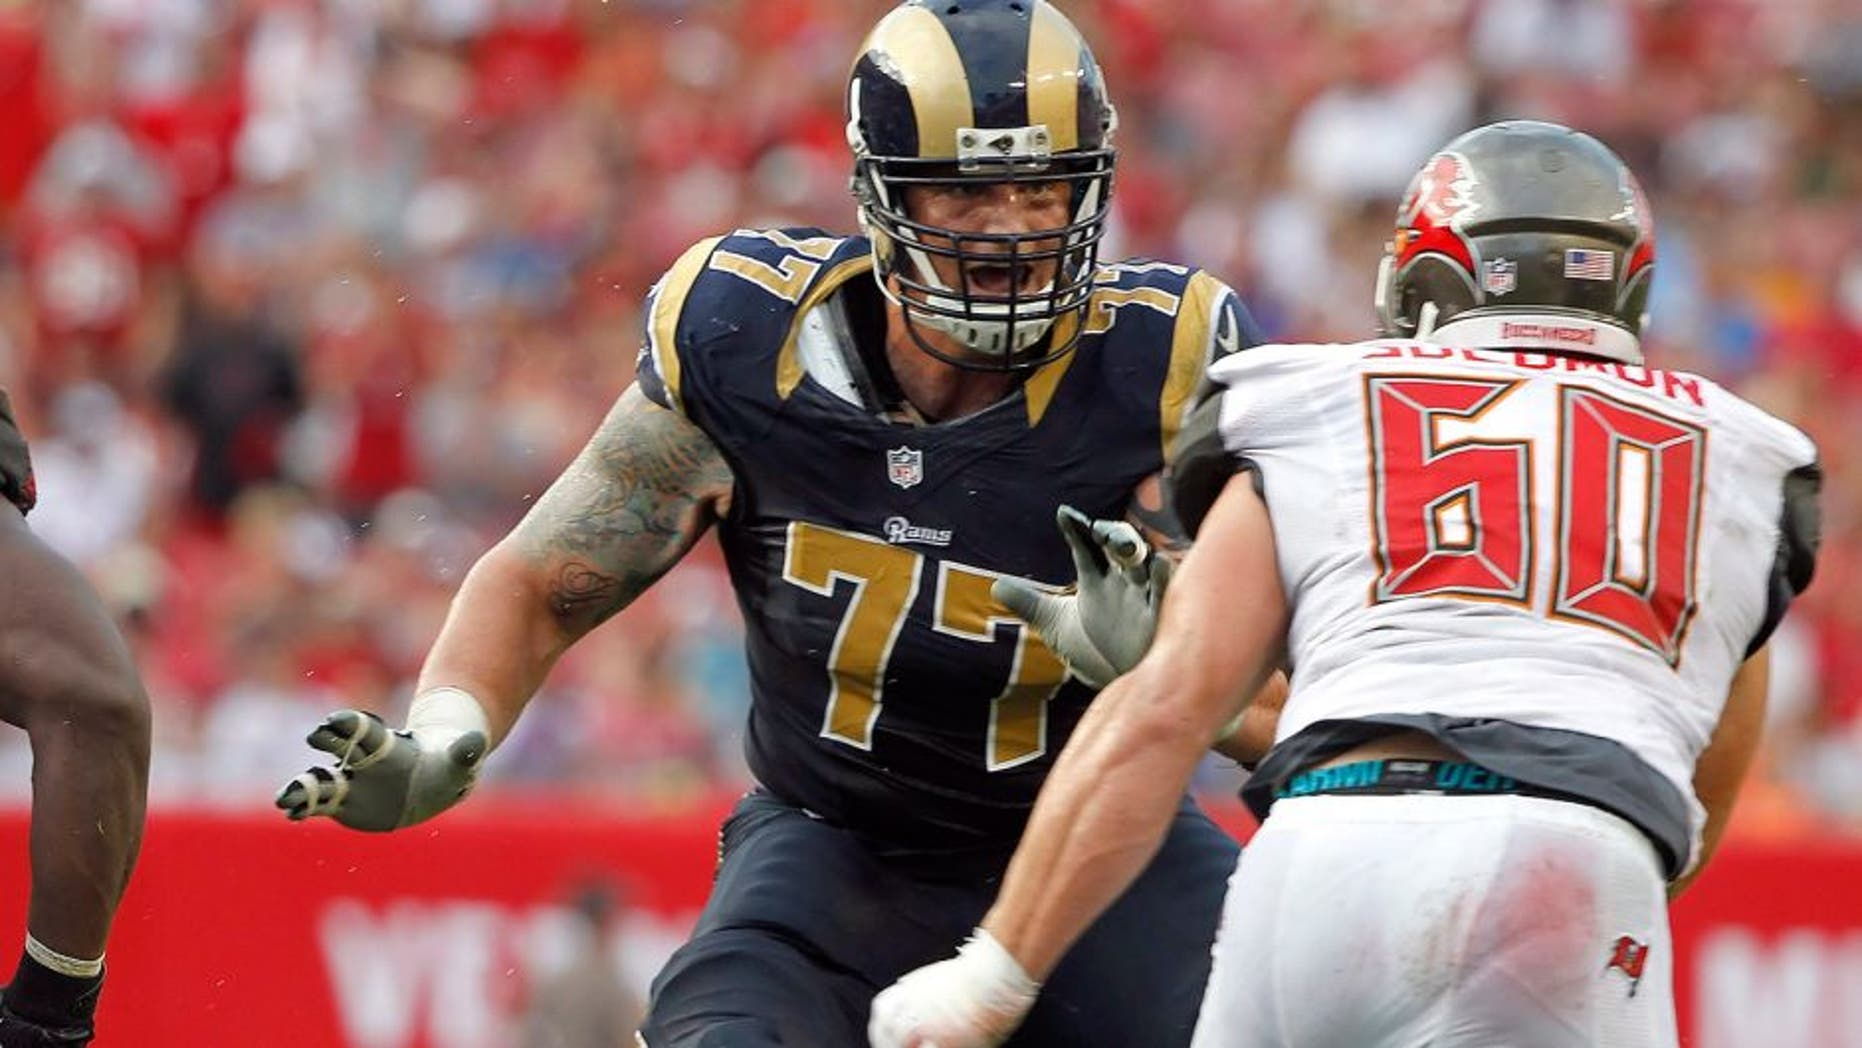 Sep 14, 2014; Tampa, FL, USA; St. Louis Rams tackle Jake Long (77) blocks against the Tampa Bay Buccaneers during the second half at Raymond James Stadium. St. Louis Rams defeated the Tampa Bay Buccaneers 19-17. Mandatory Credit: Kim Klement-USA TODAY Sports